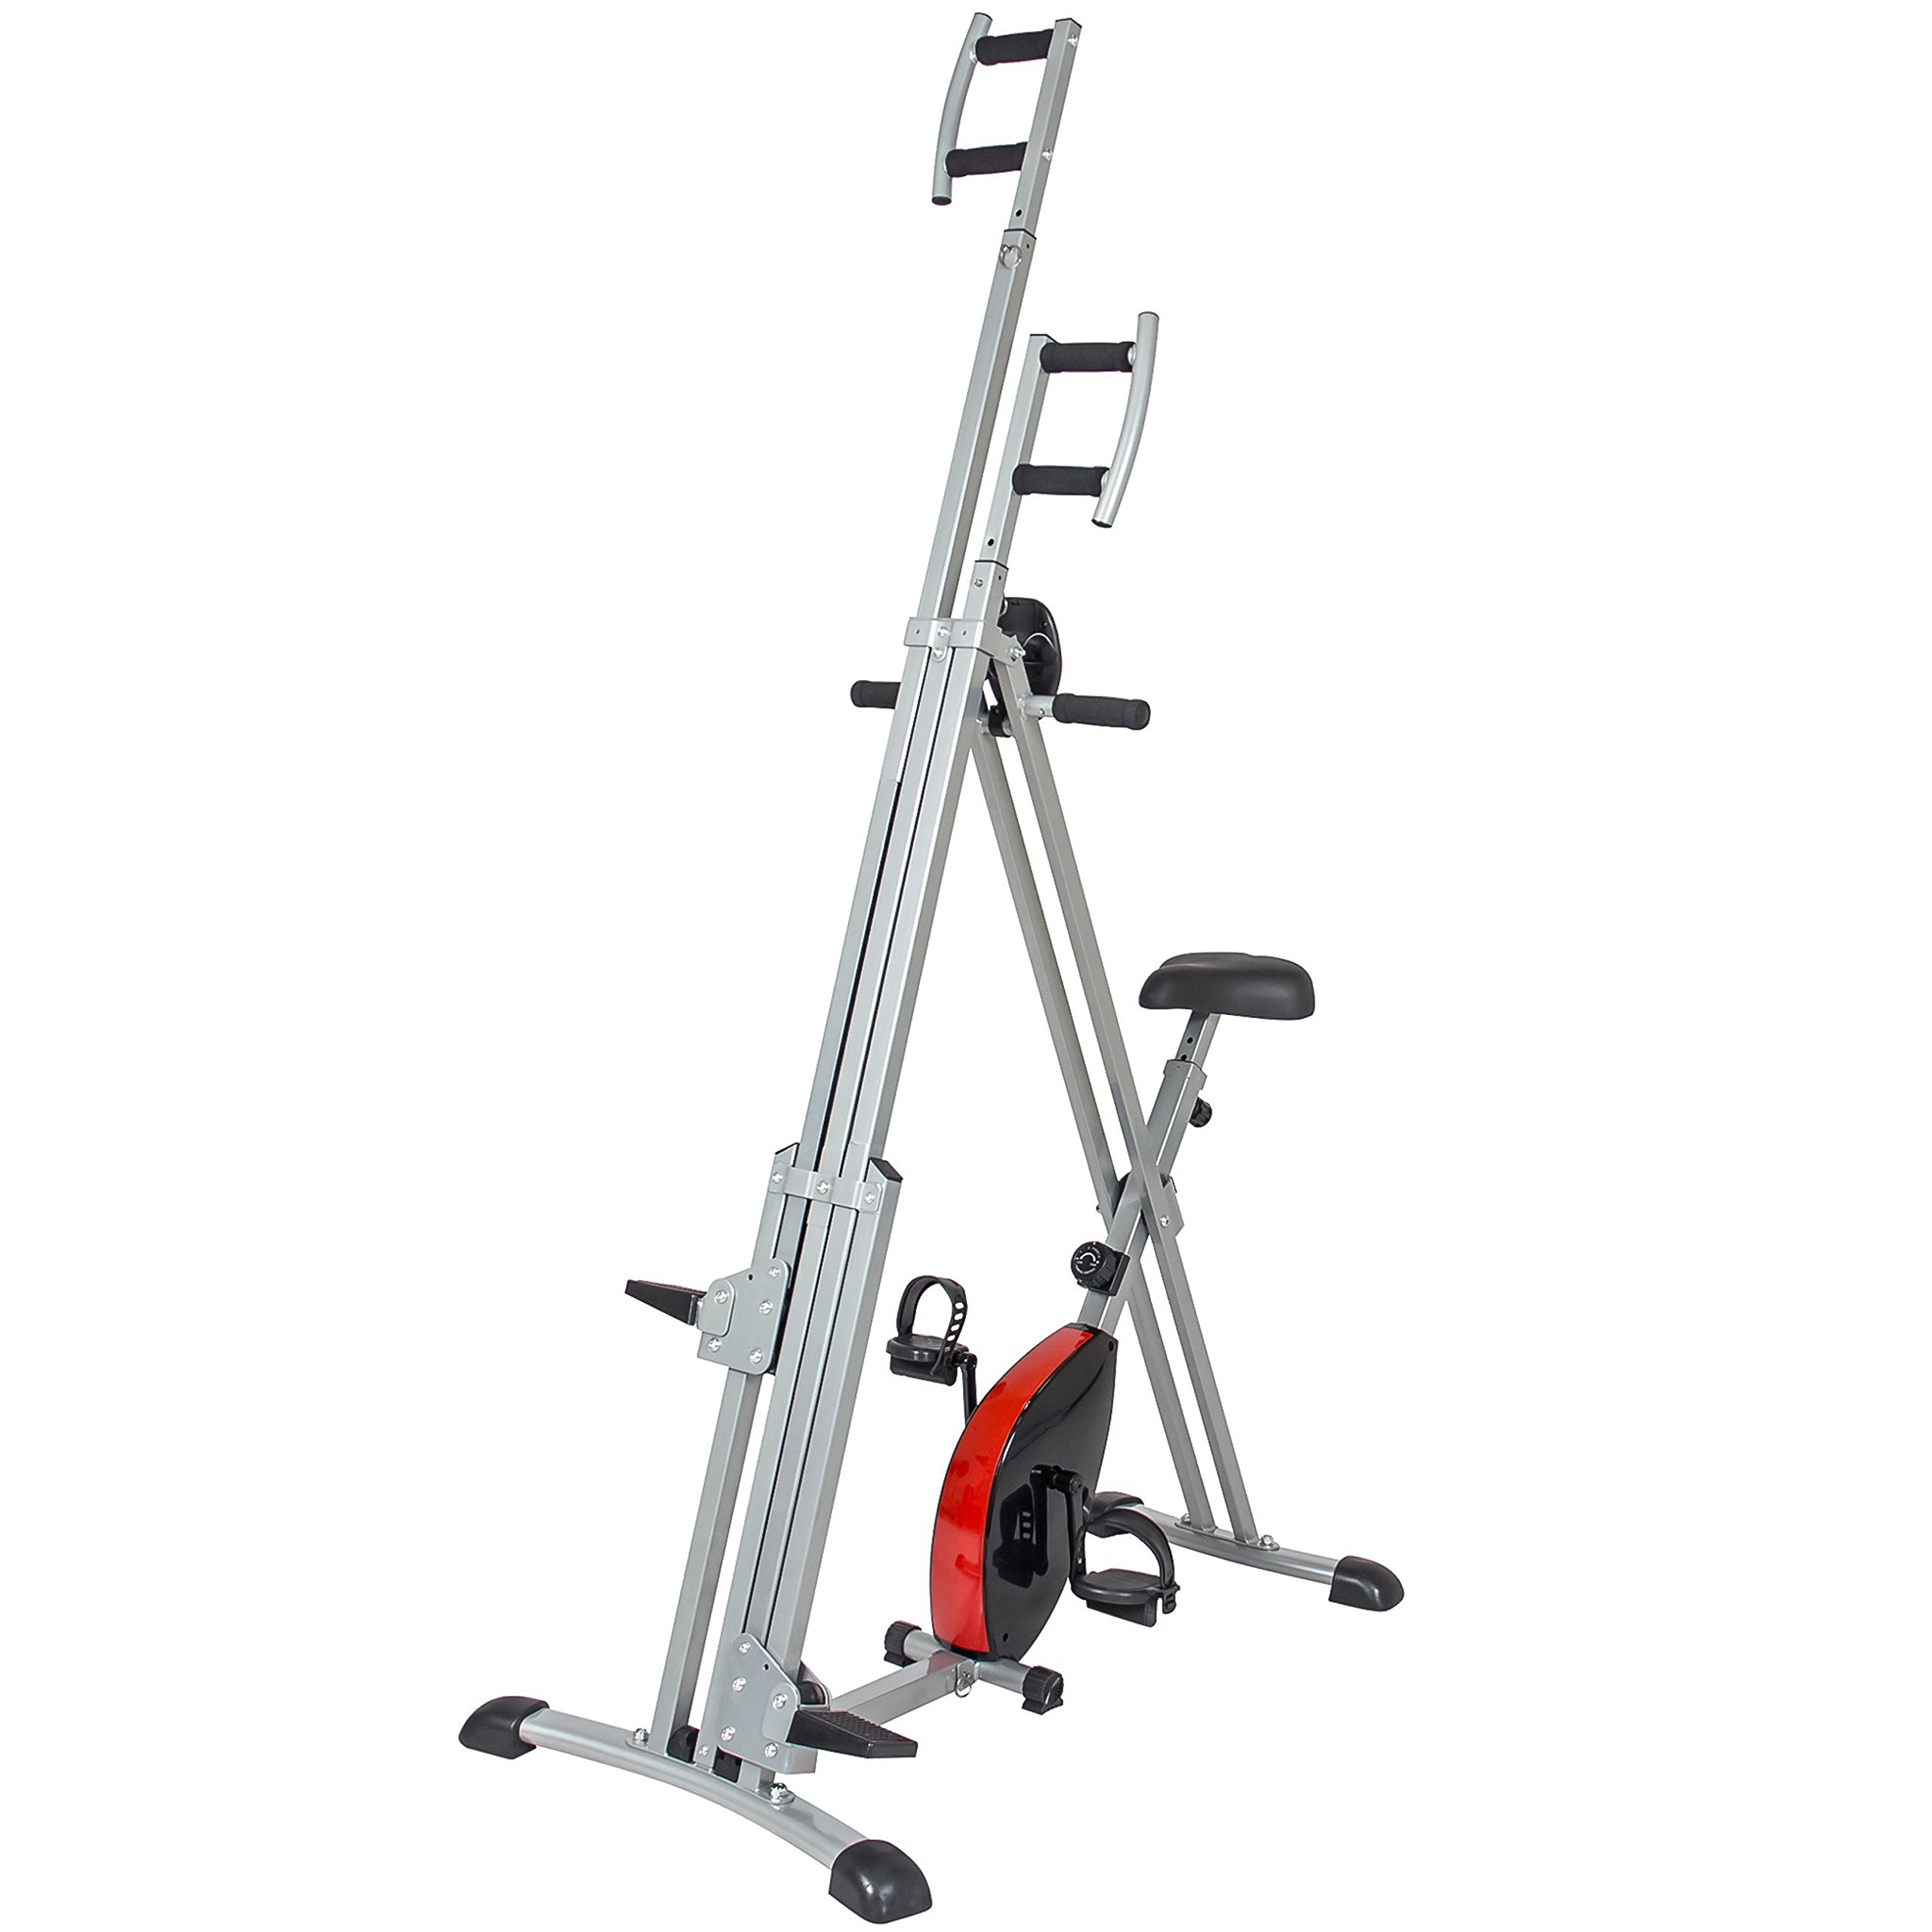 Best Choice Products Total Body 2-IN-1 Vertical Climber Magnetic Exercise Bike Fitness Machine by Best Choice Products